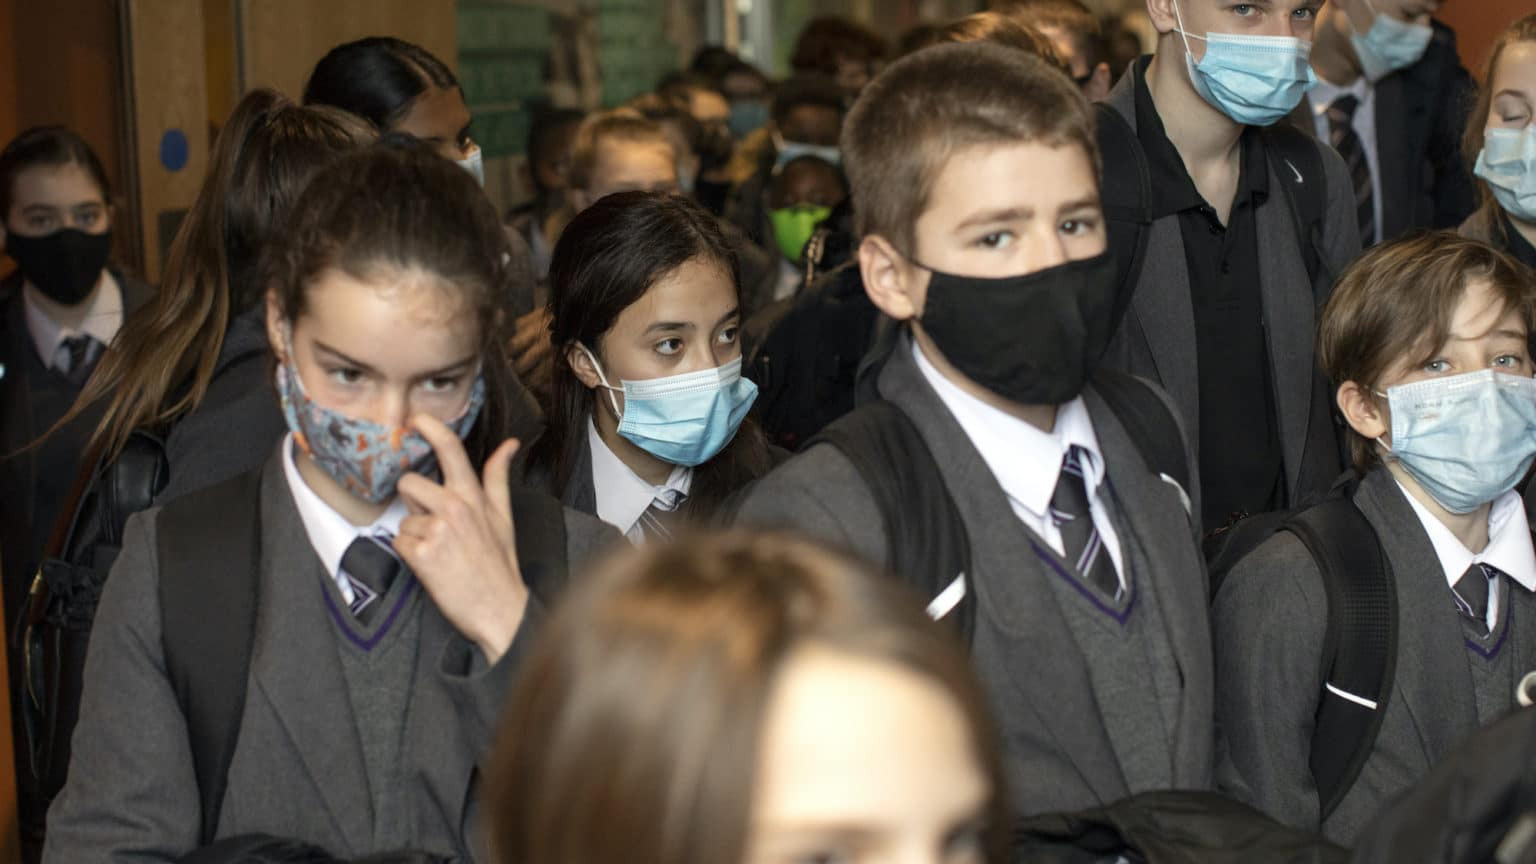 Why are children still forced to wear face masks?